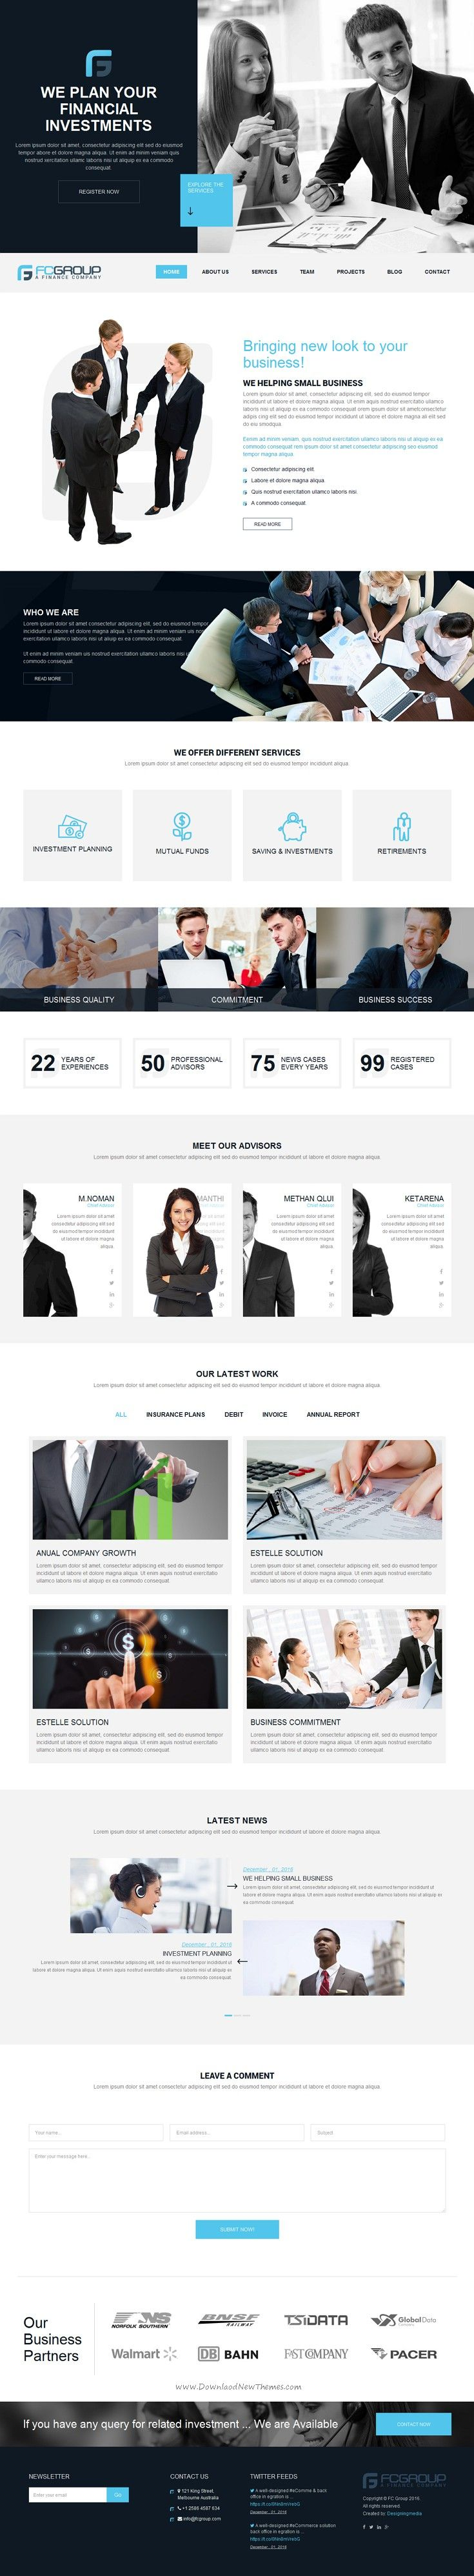 Best 25+ Custom website design ideas on Pinterest | Custom website ...